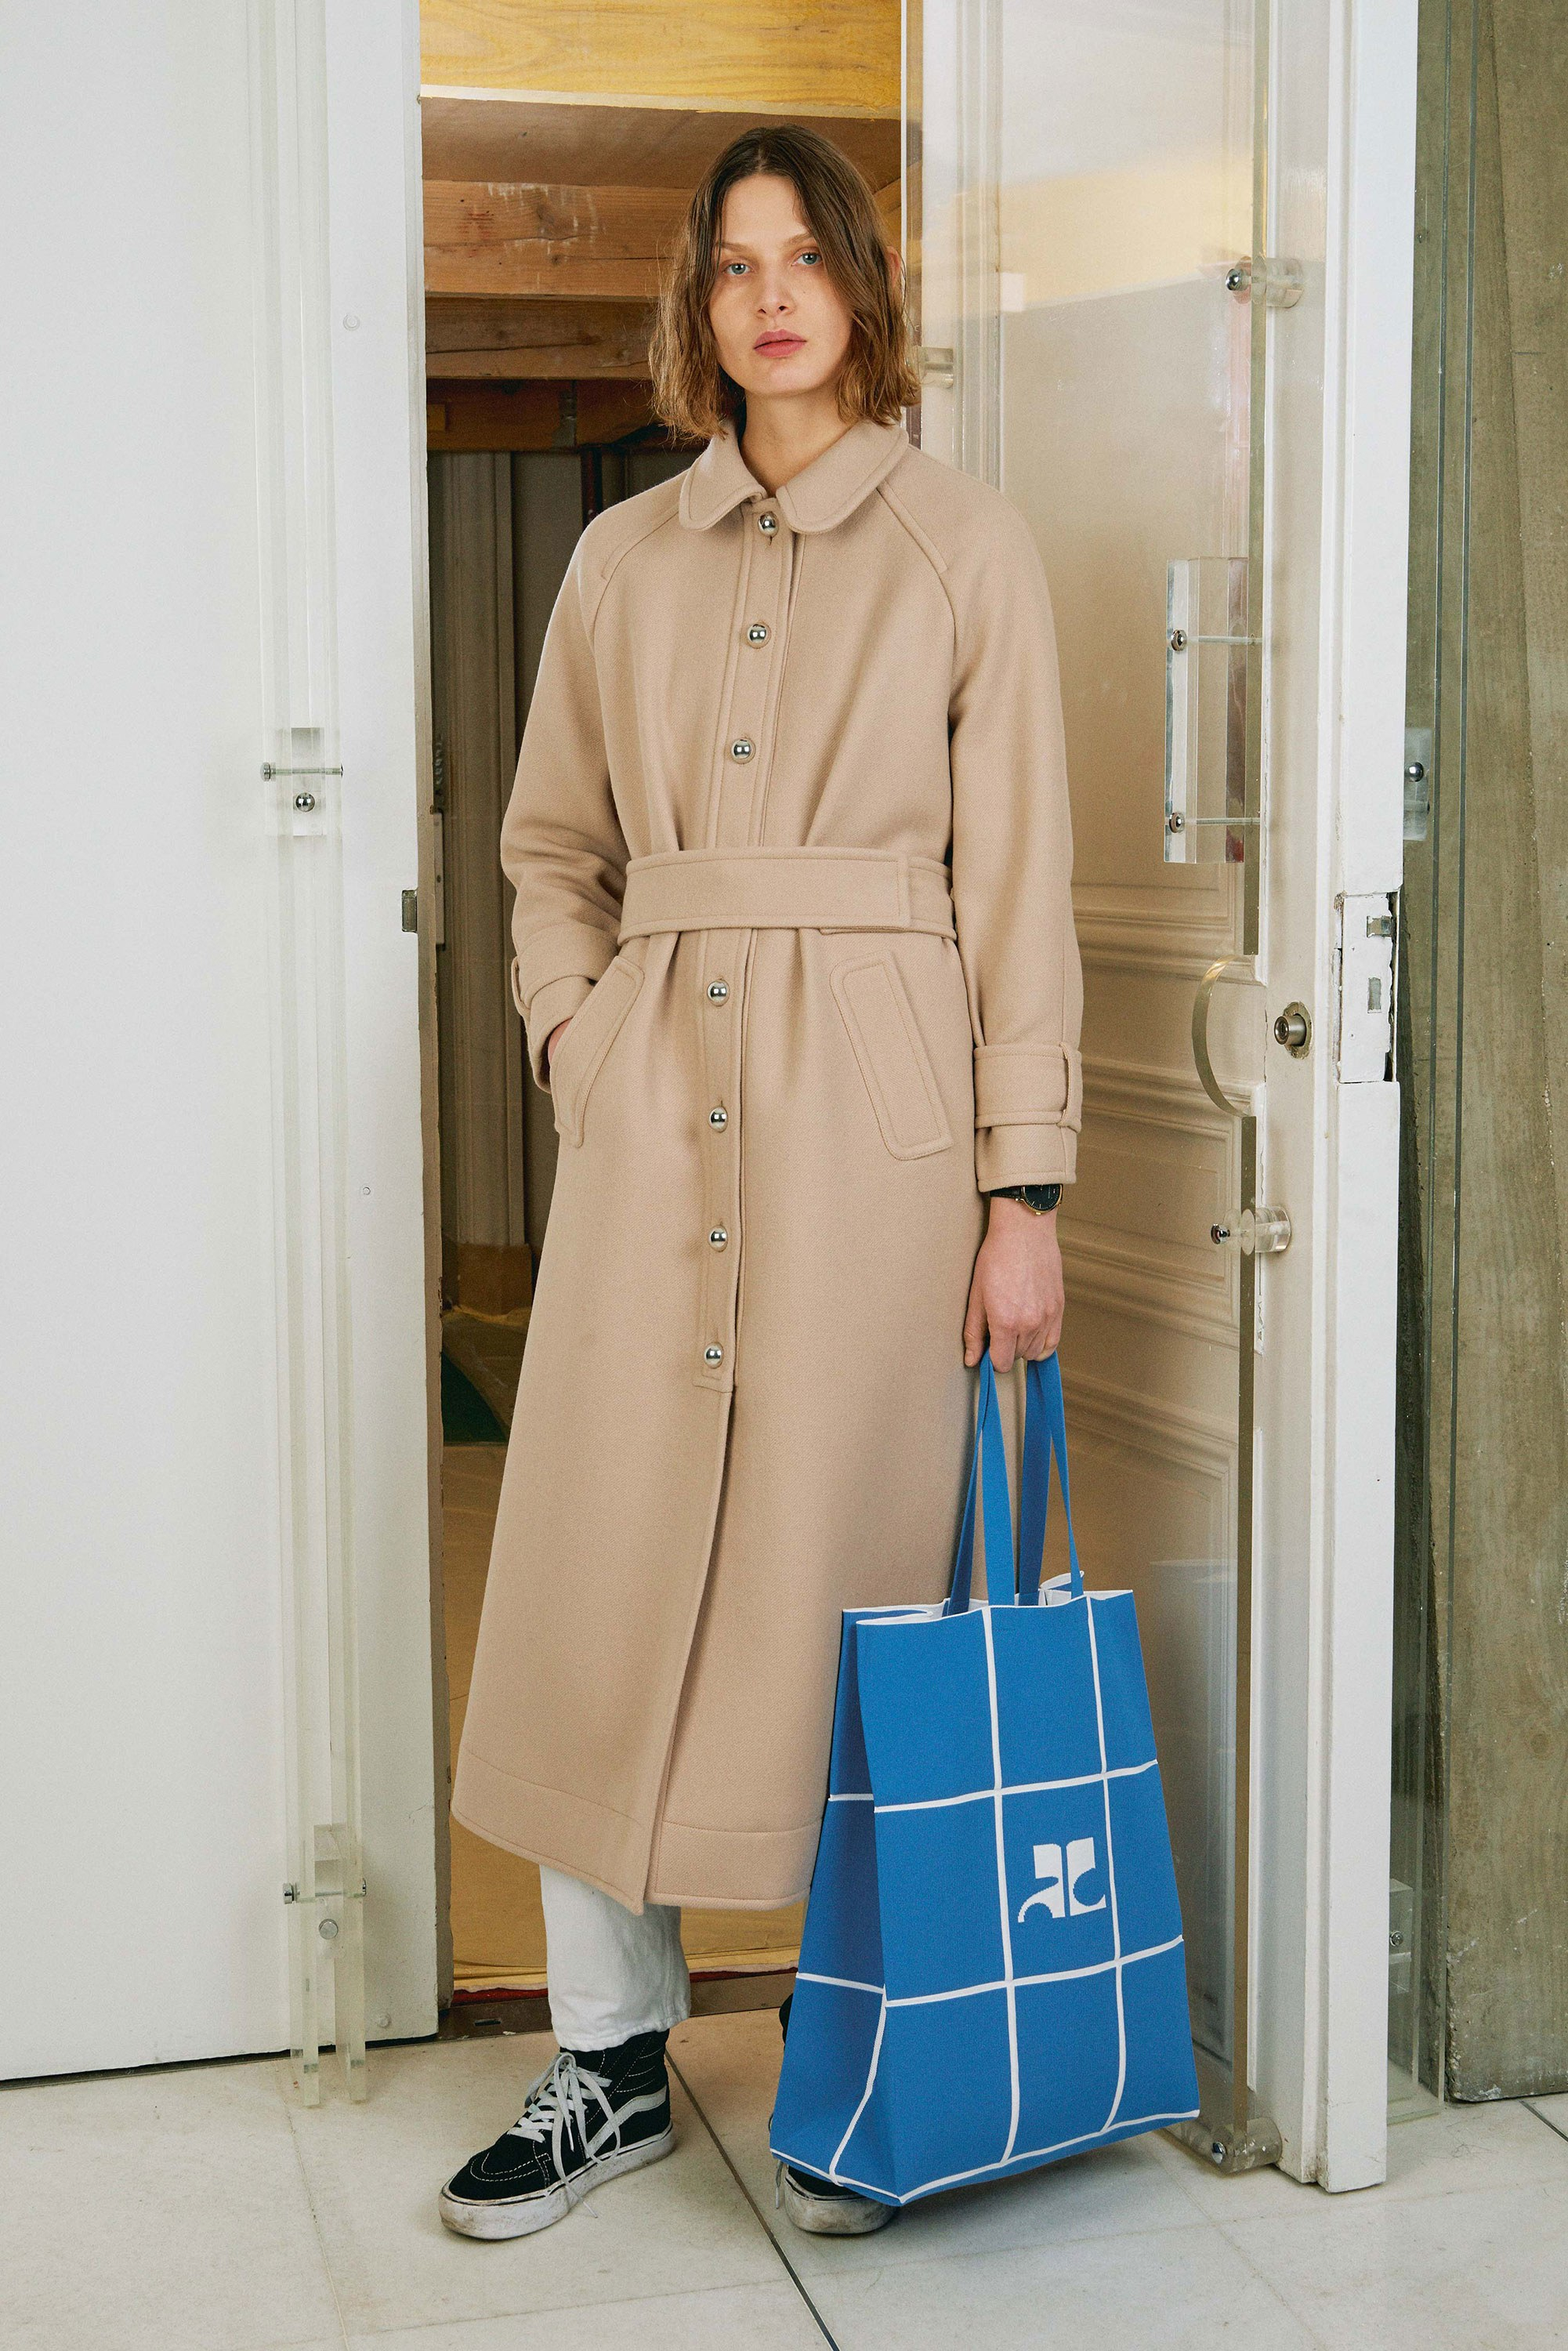 01-courreges-fall-2017.jpg